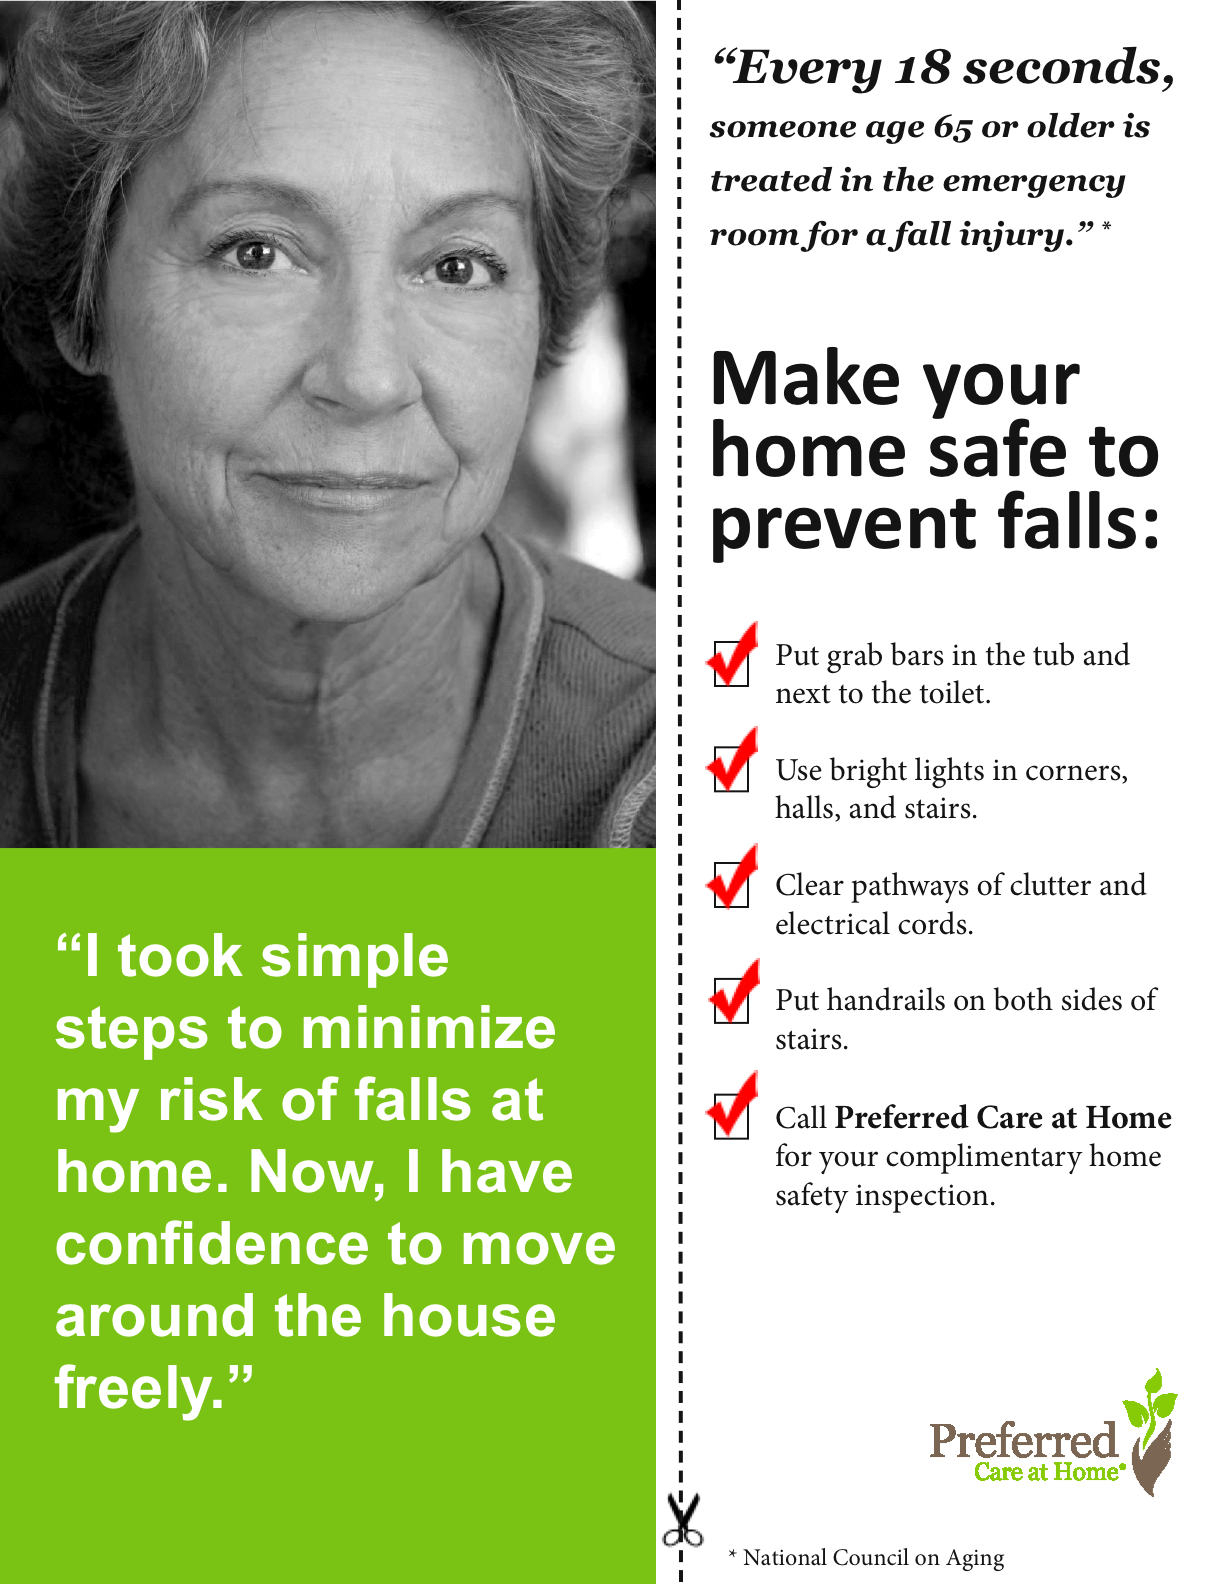 Preferred Care at Home Offers Complimentary Home Safety Inspections